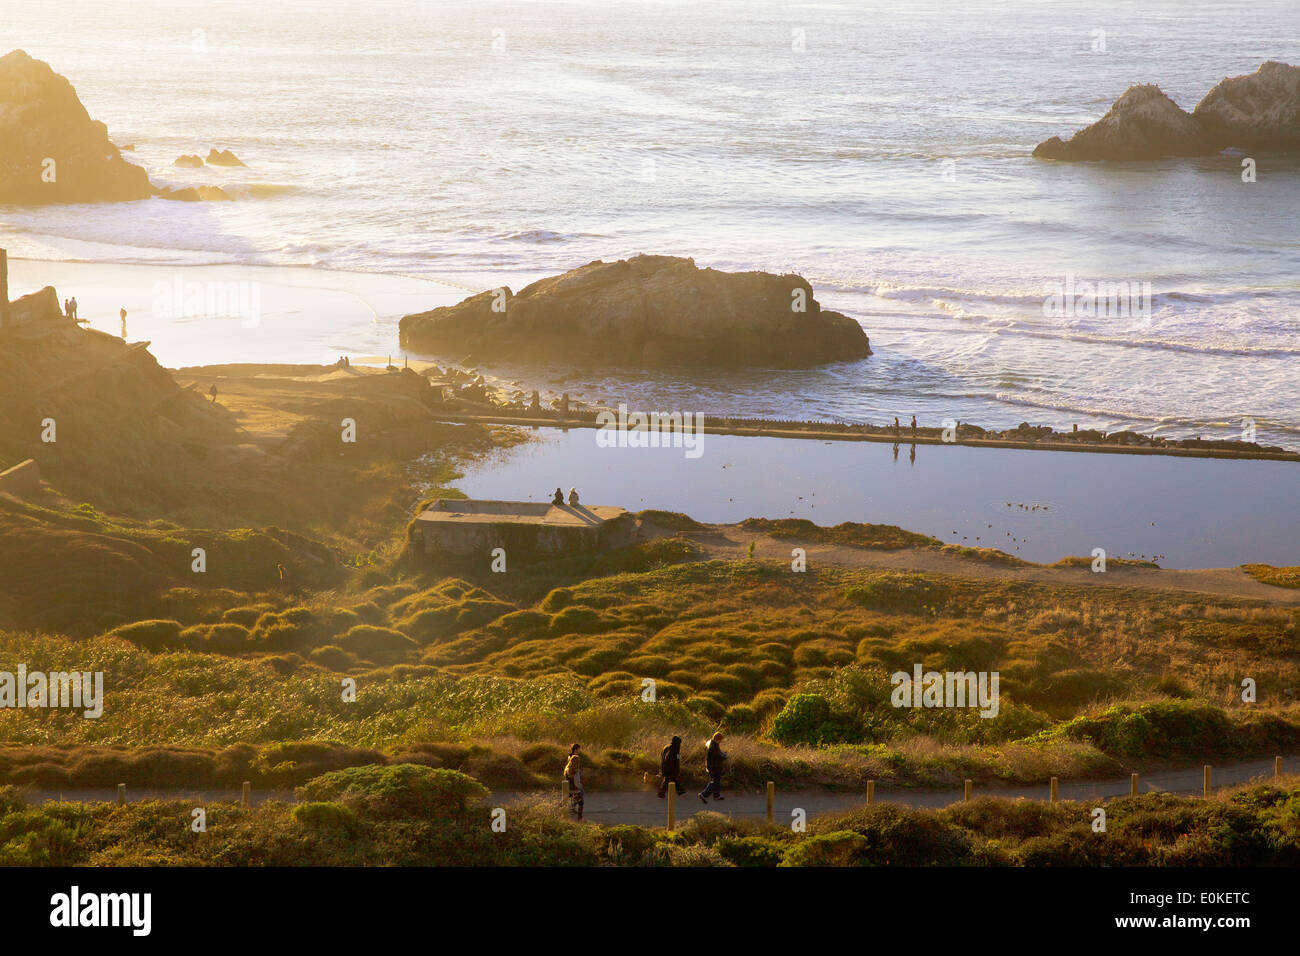 People hike around on the paths and walk along the sea wall at the Sutro Bath Ruins at Lands End in San Francisco, - Stock Image